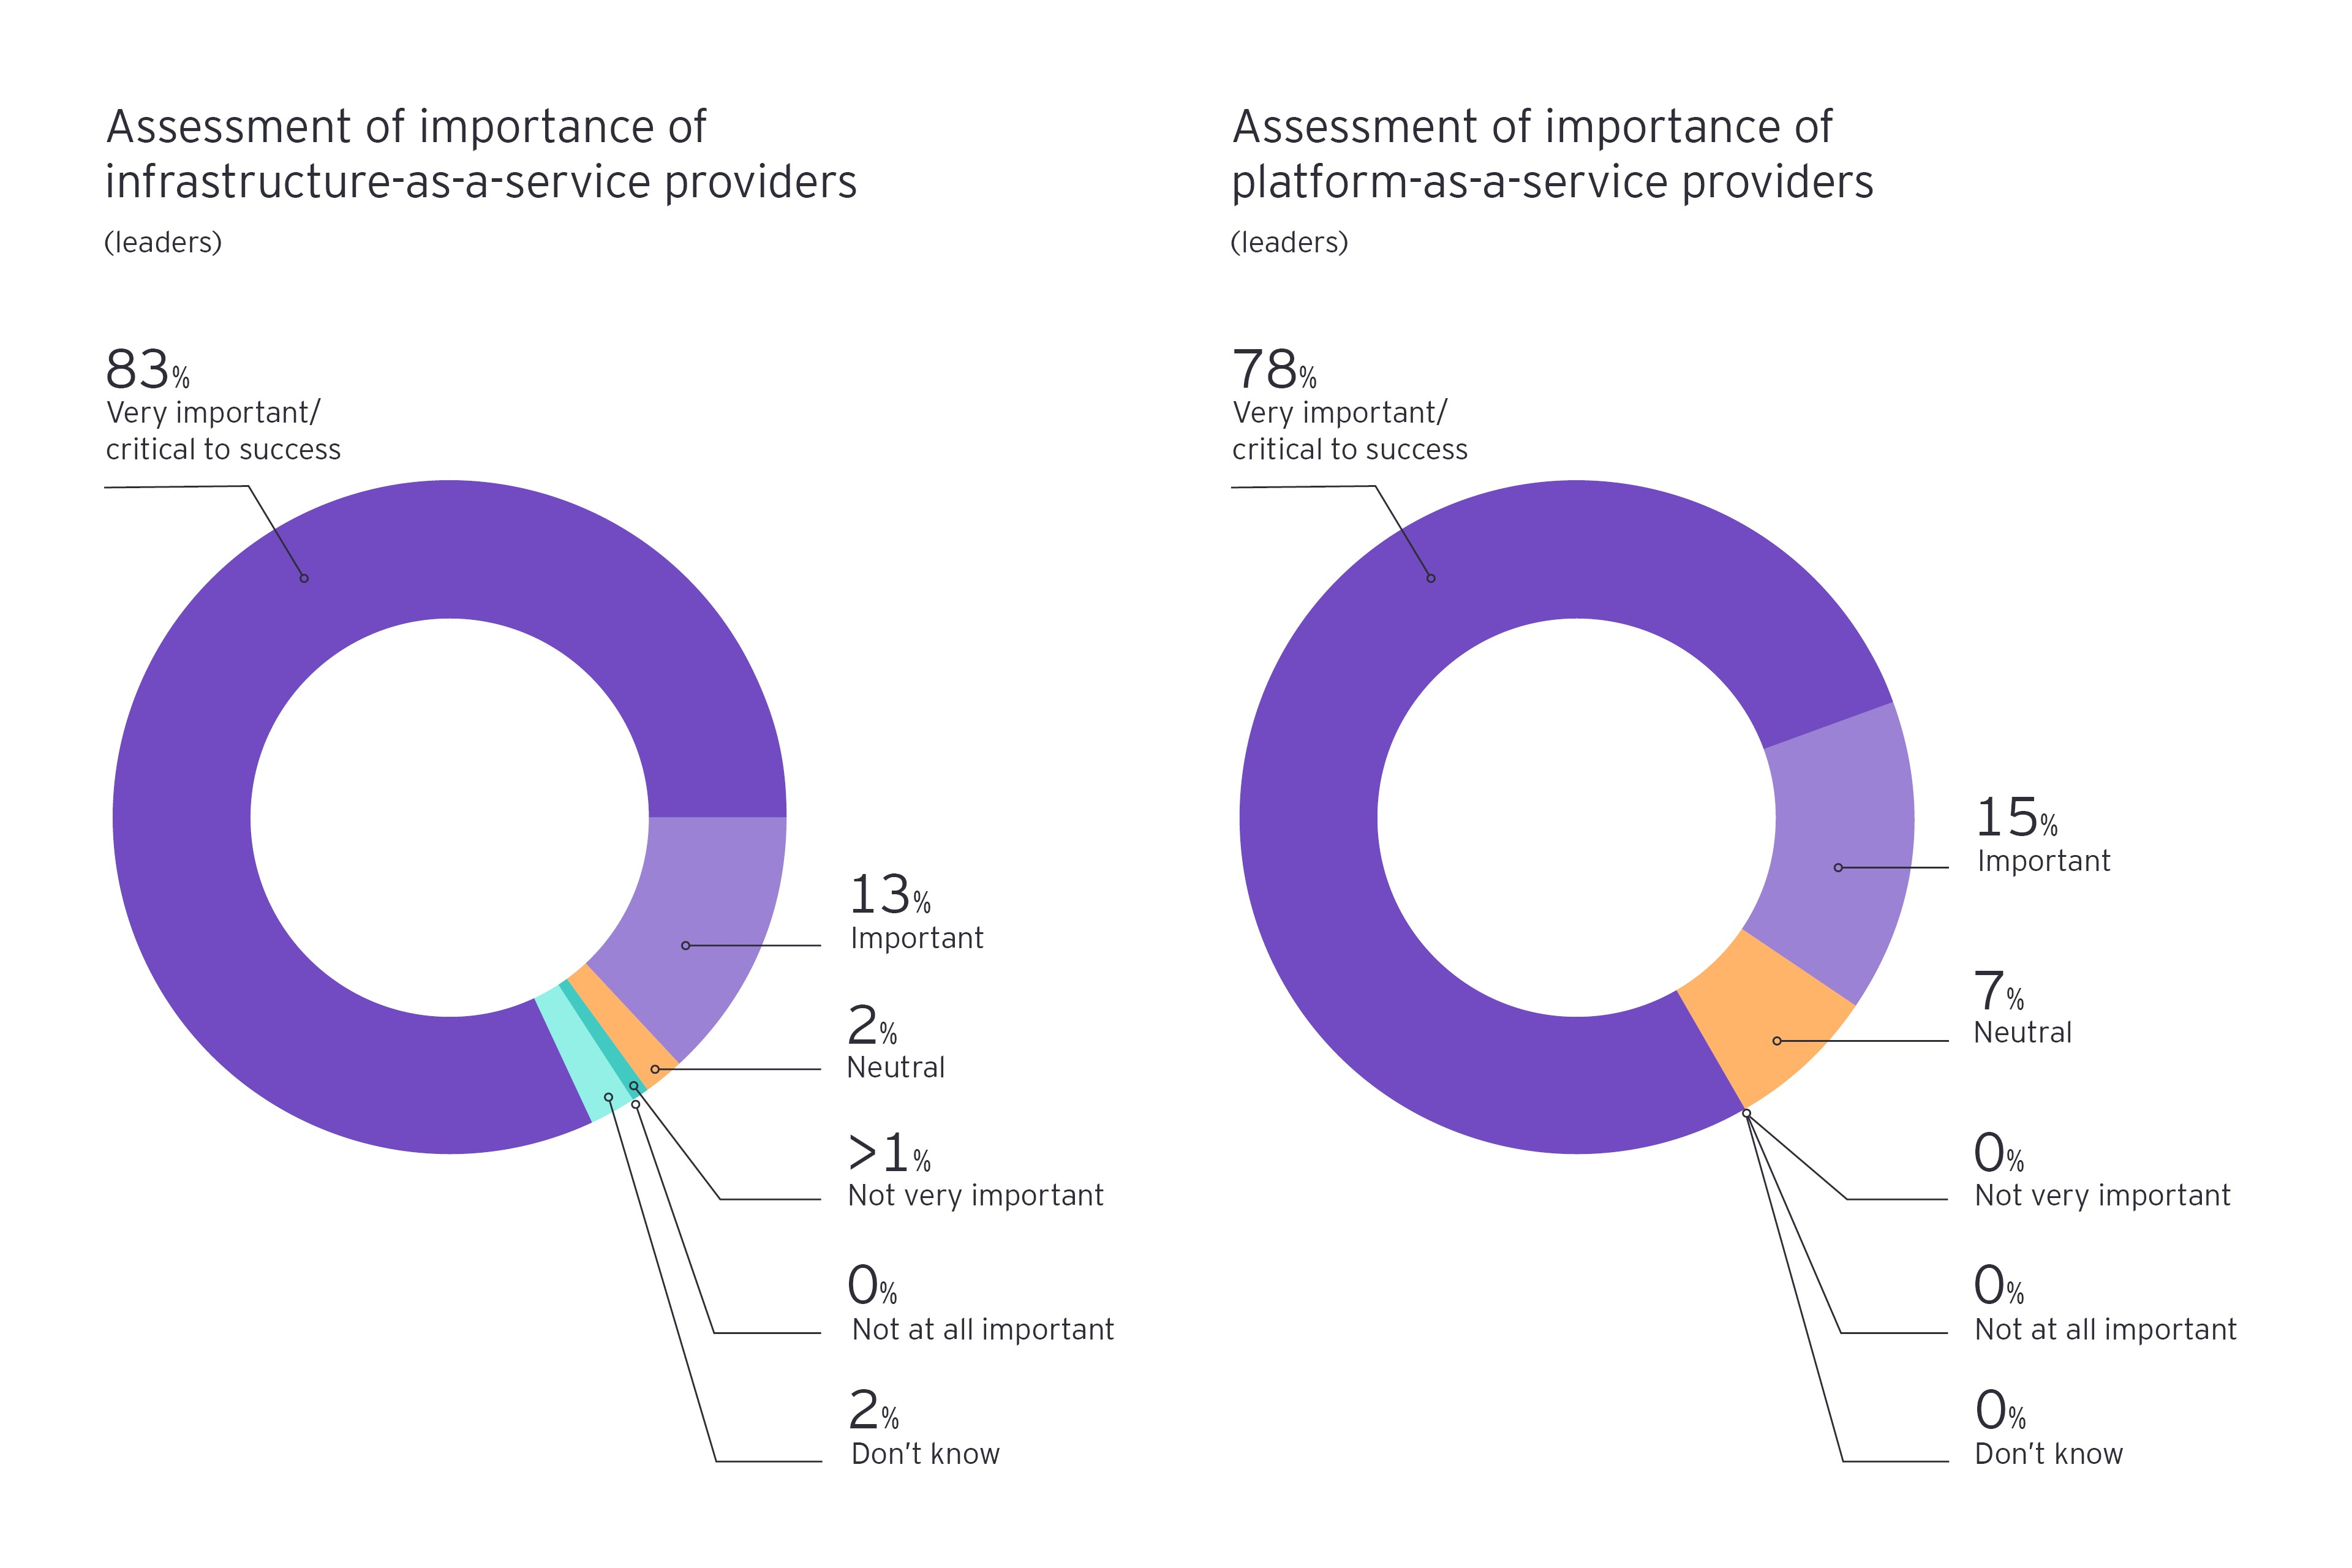 Combined assessment of importance of platform